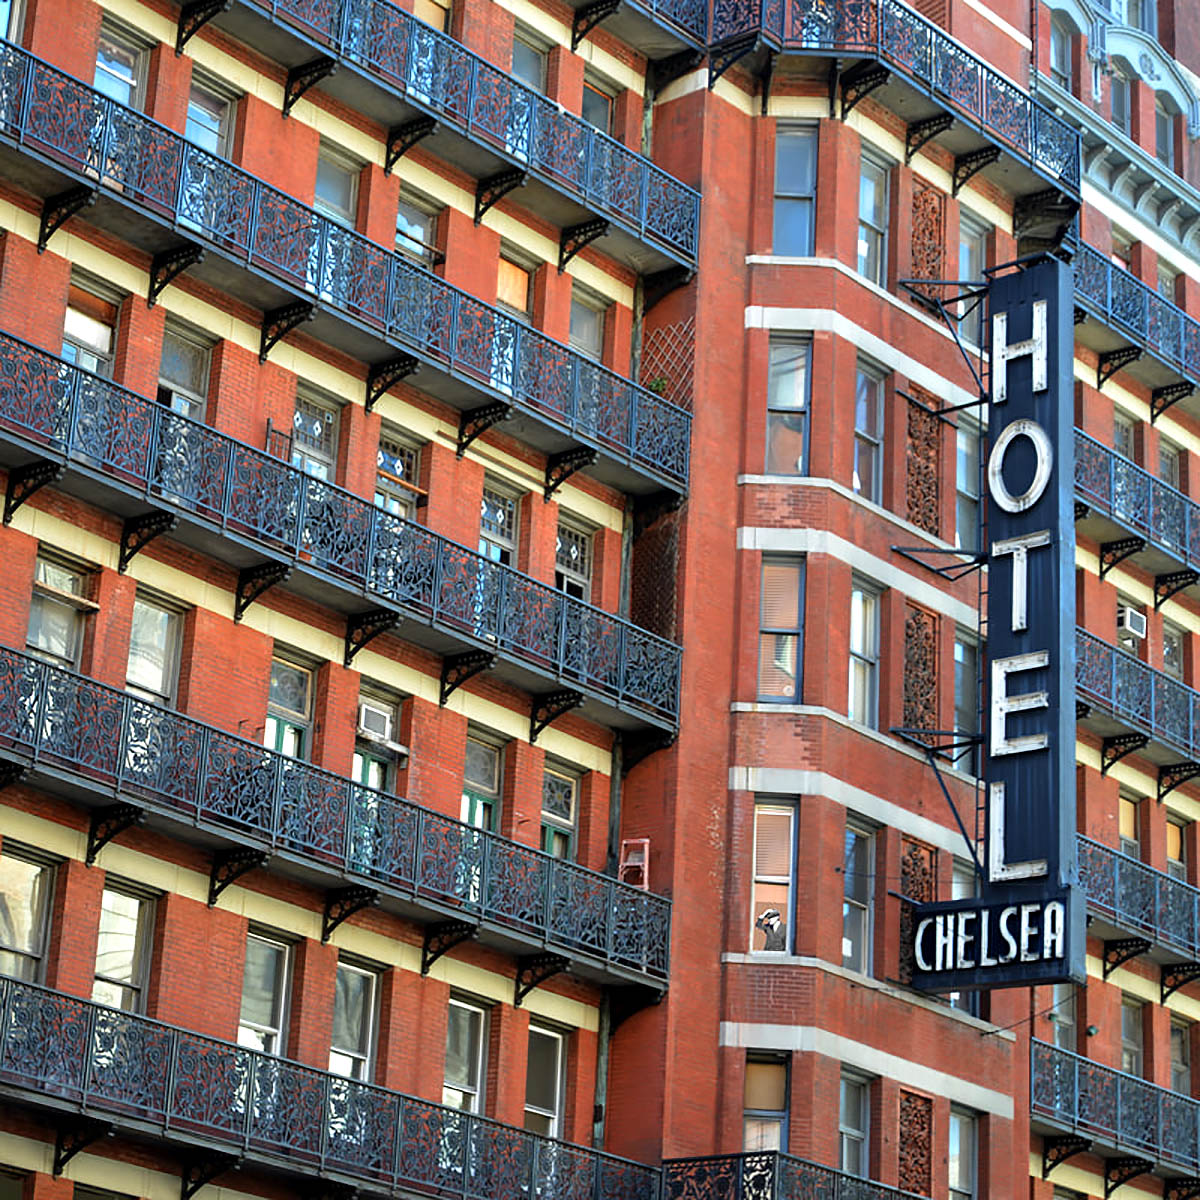 Colin M Bryce, 'Chelsea Hotel', photographic print